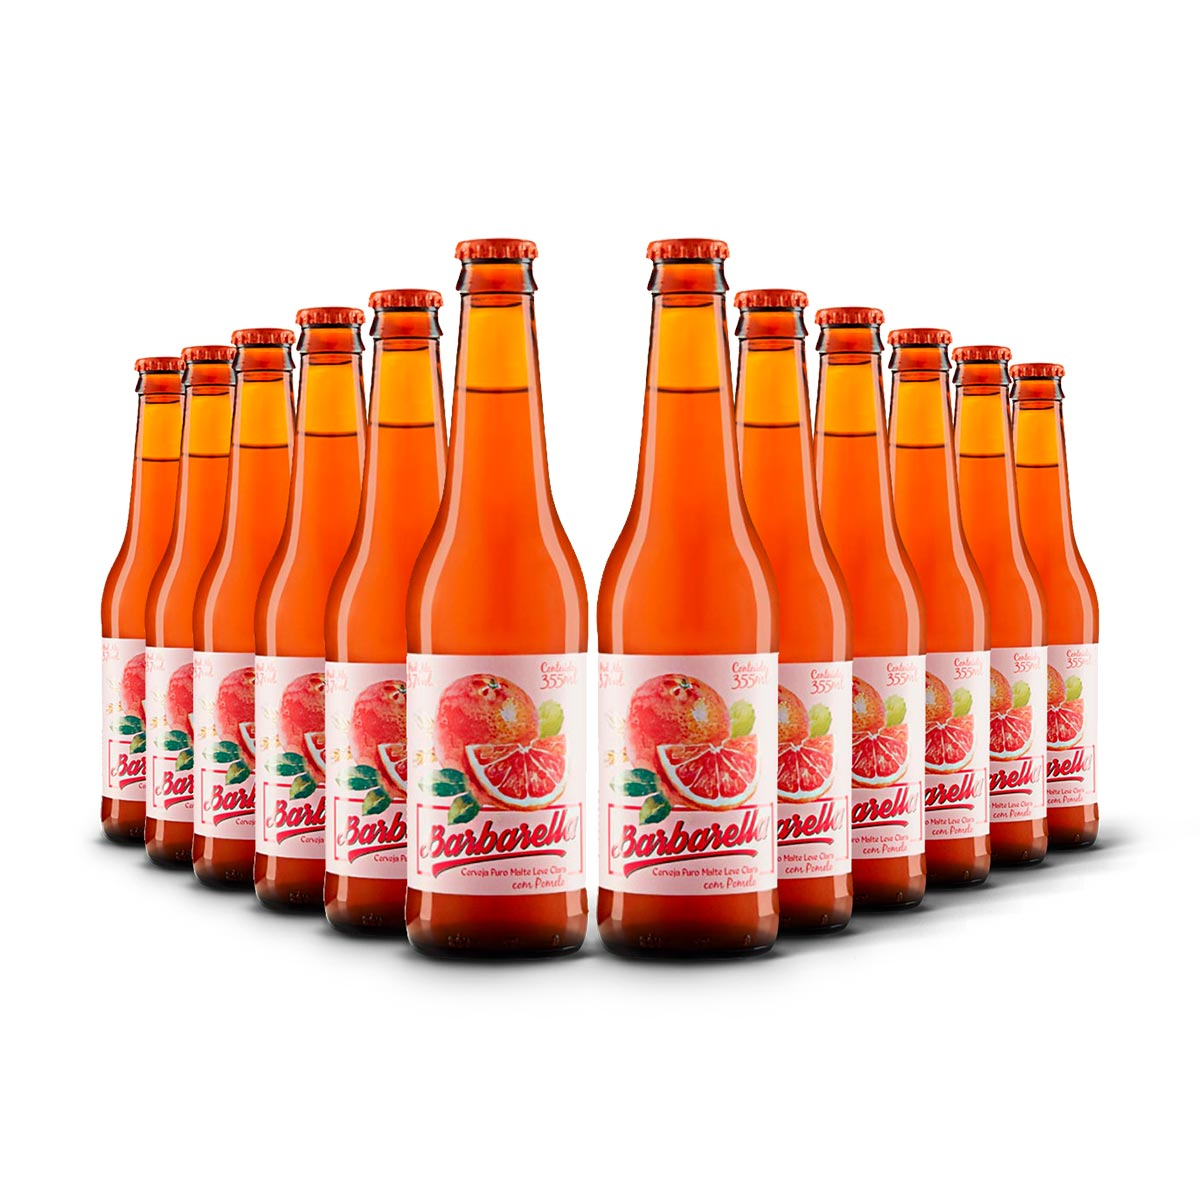 Pack Barbarella Fruitbier Pomelo 12 cervejas 355ml